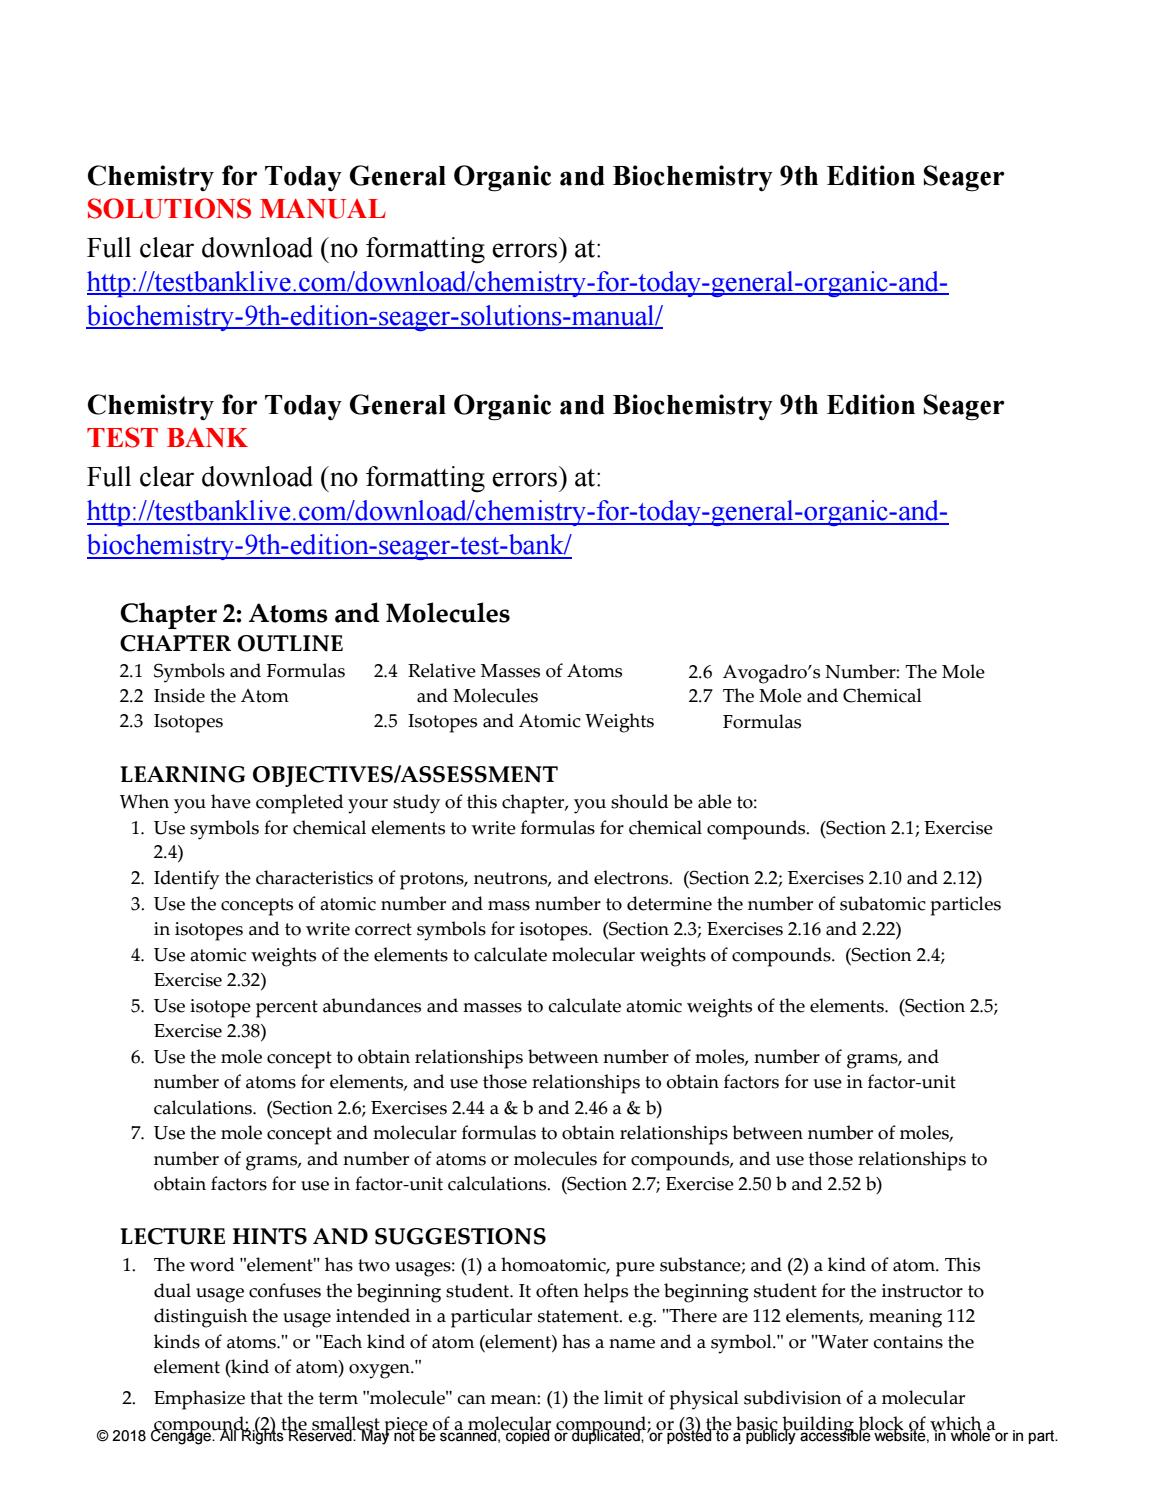 Chemistry for today general organic and biochemistry 9th edition seager solutions  manual by Danila98 - issuu